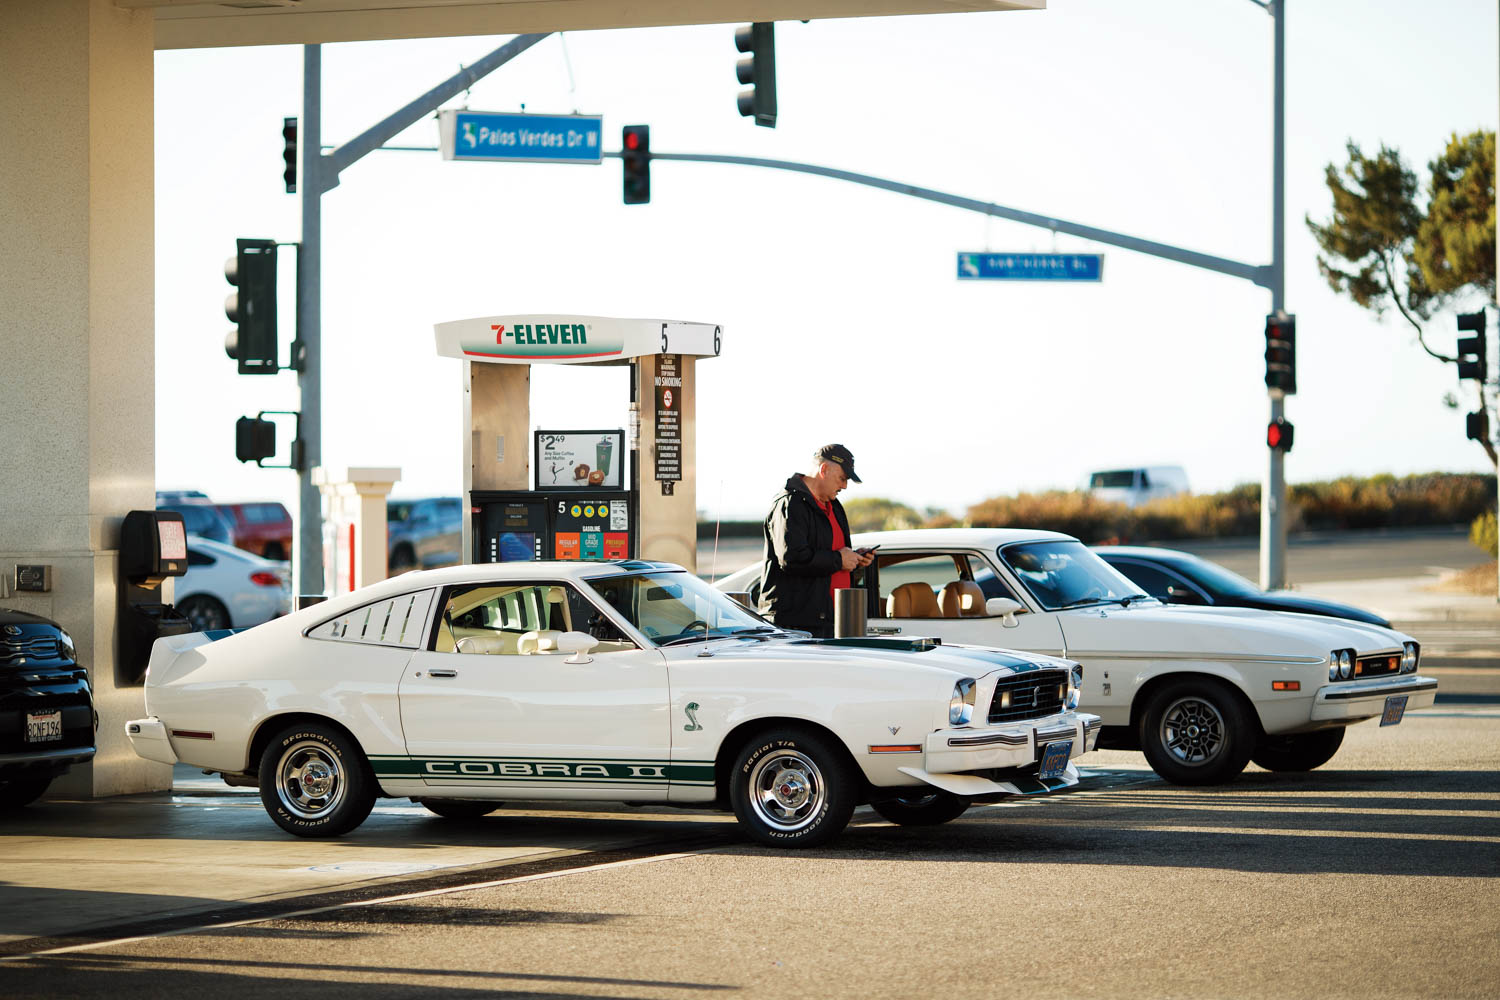 If the goal is turning heads and getting more attention, the ostentatious Mustang is the clear choice between the two. If it's a rewarding driving experience you're after, Capri all the way.